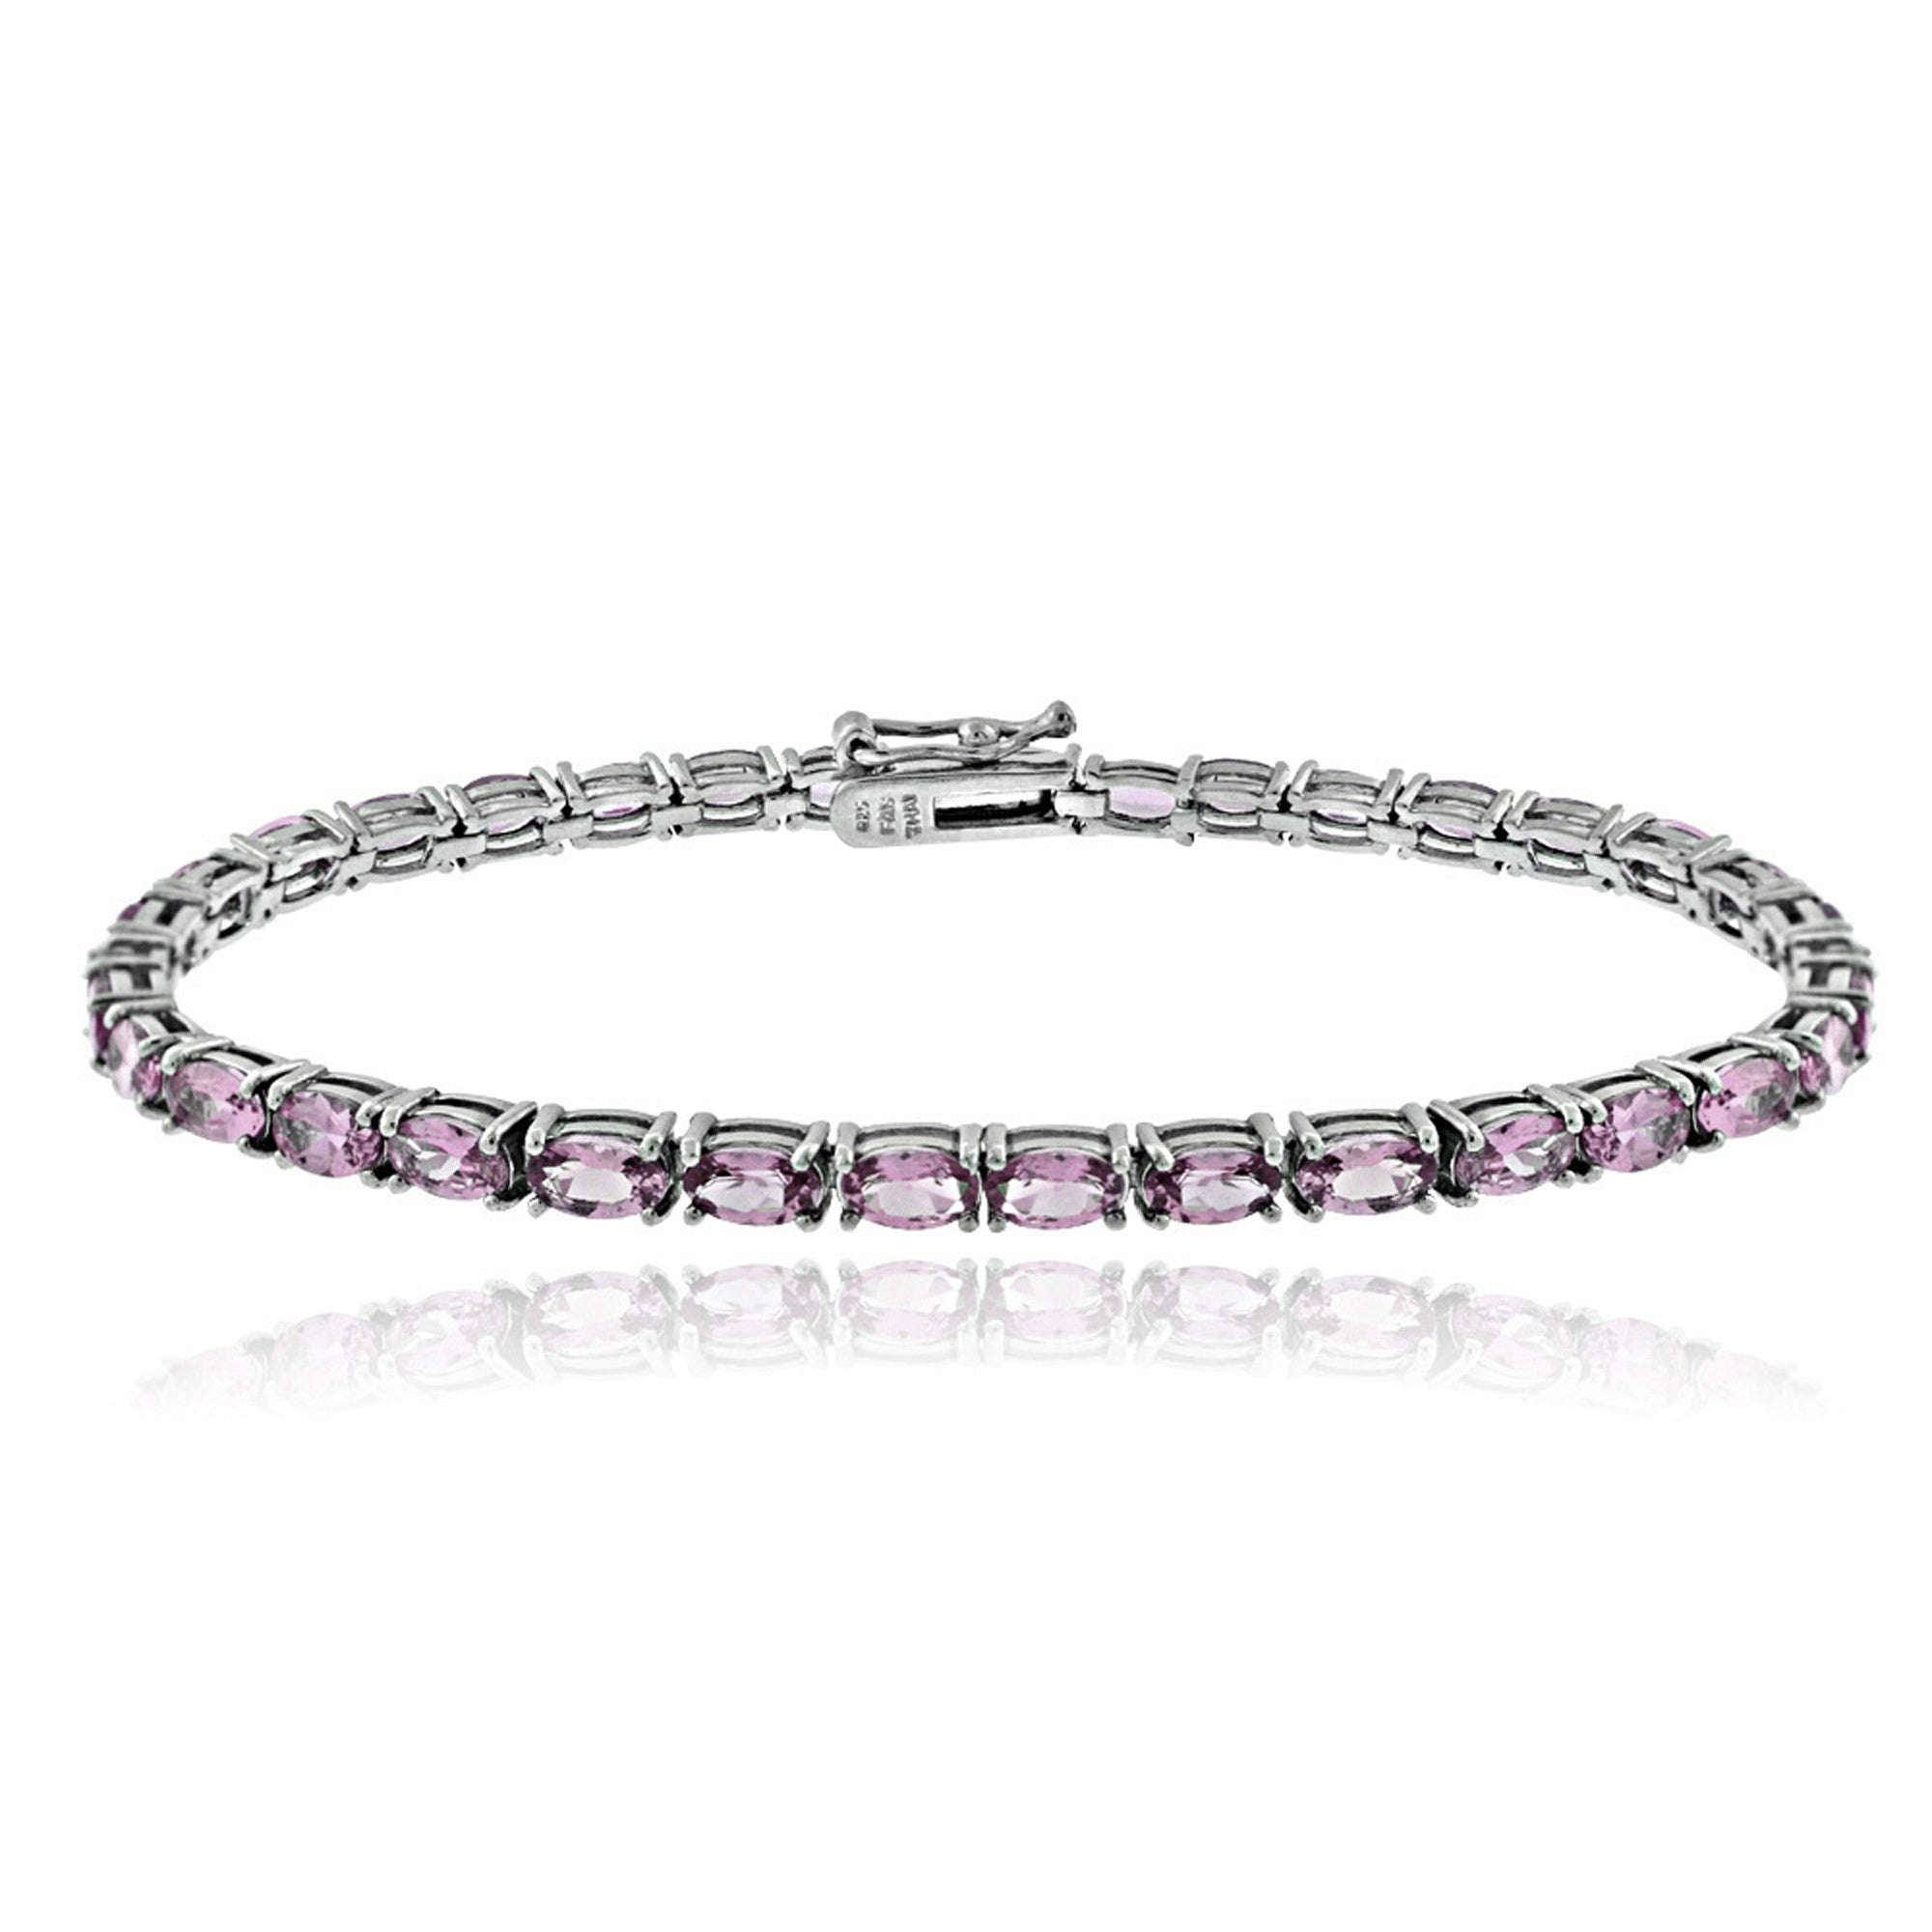 Birthstone Tennis Bracelet With CZ & Gem Accents in Sterling Silver - June Alexandrite